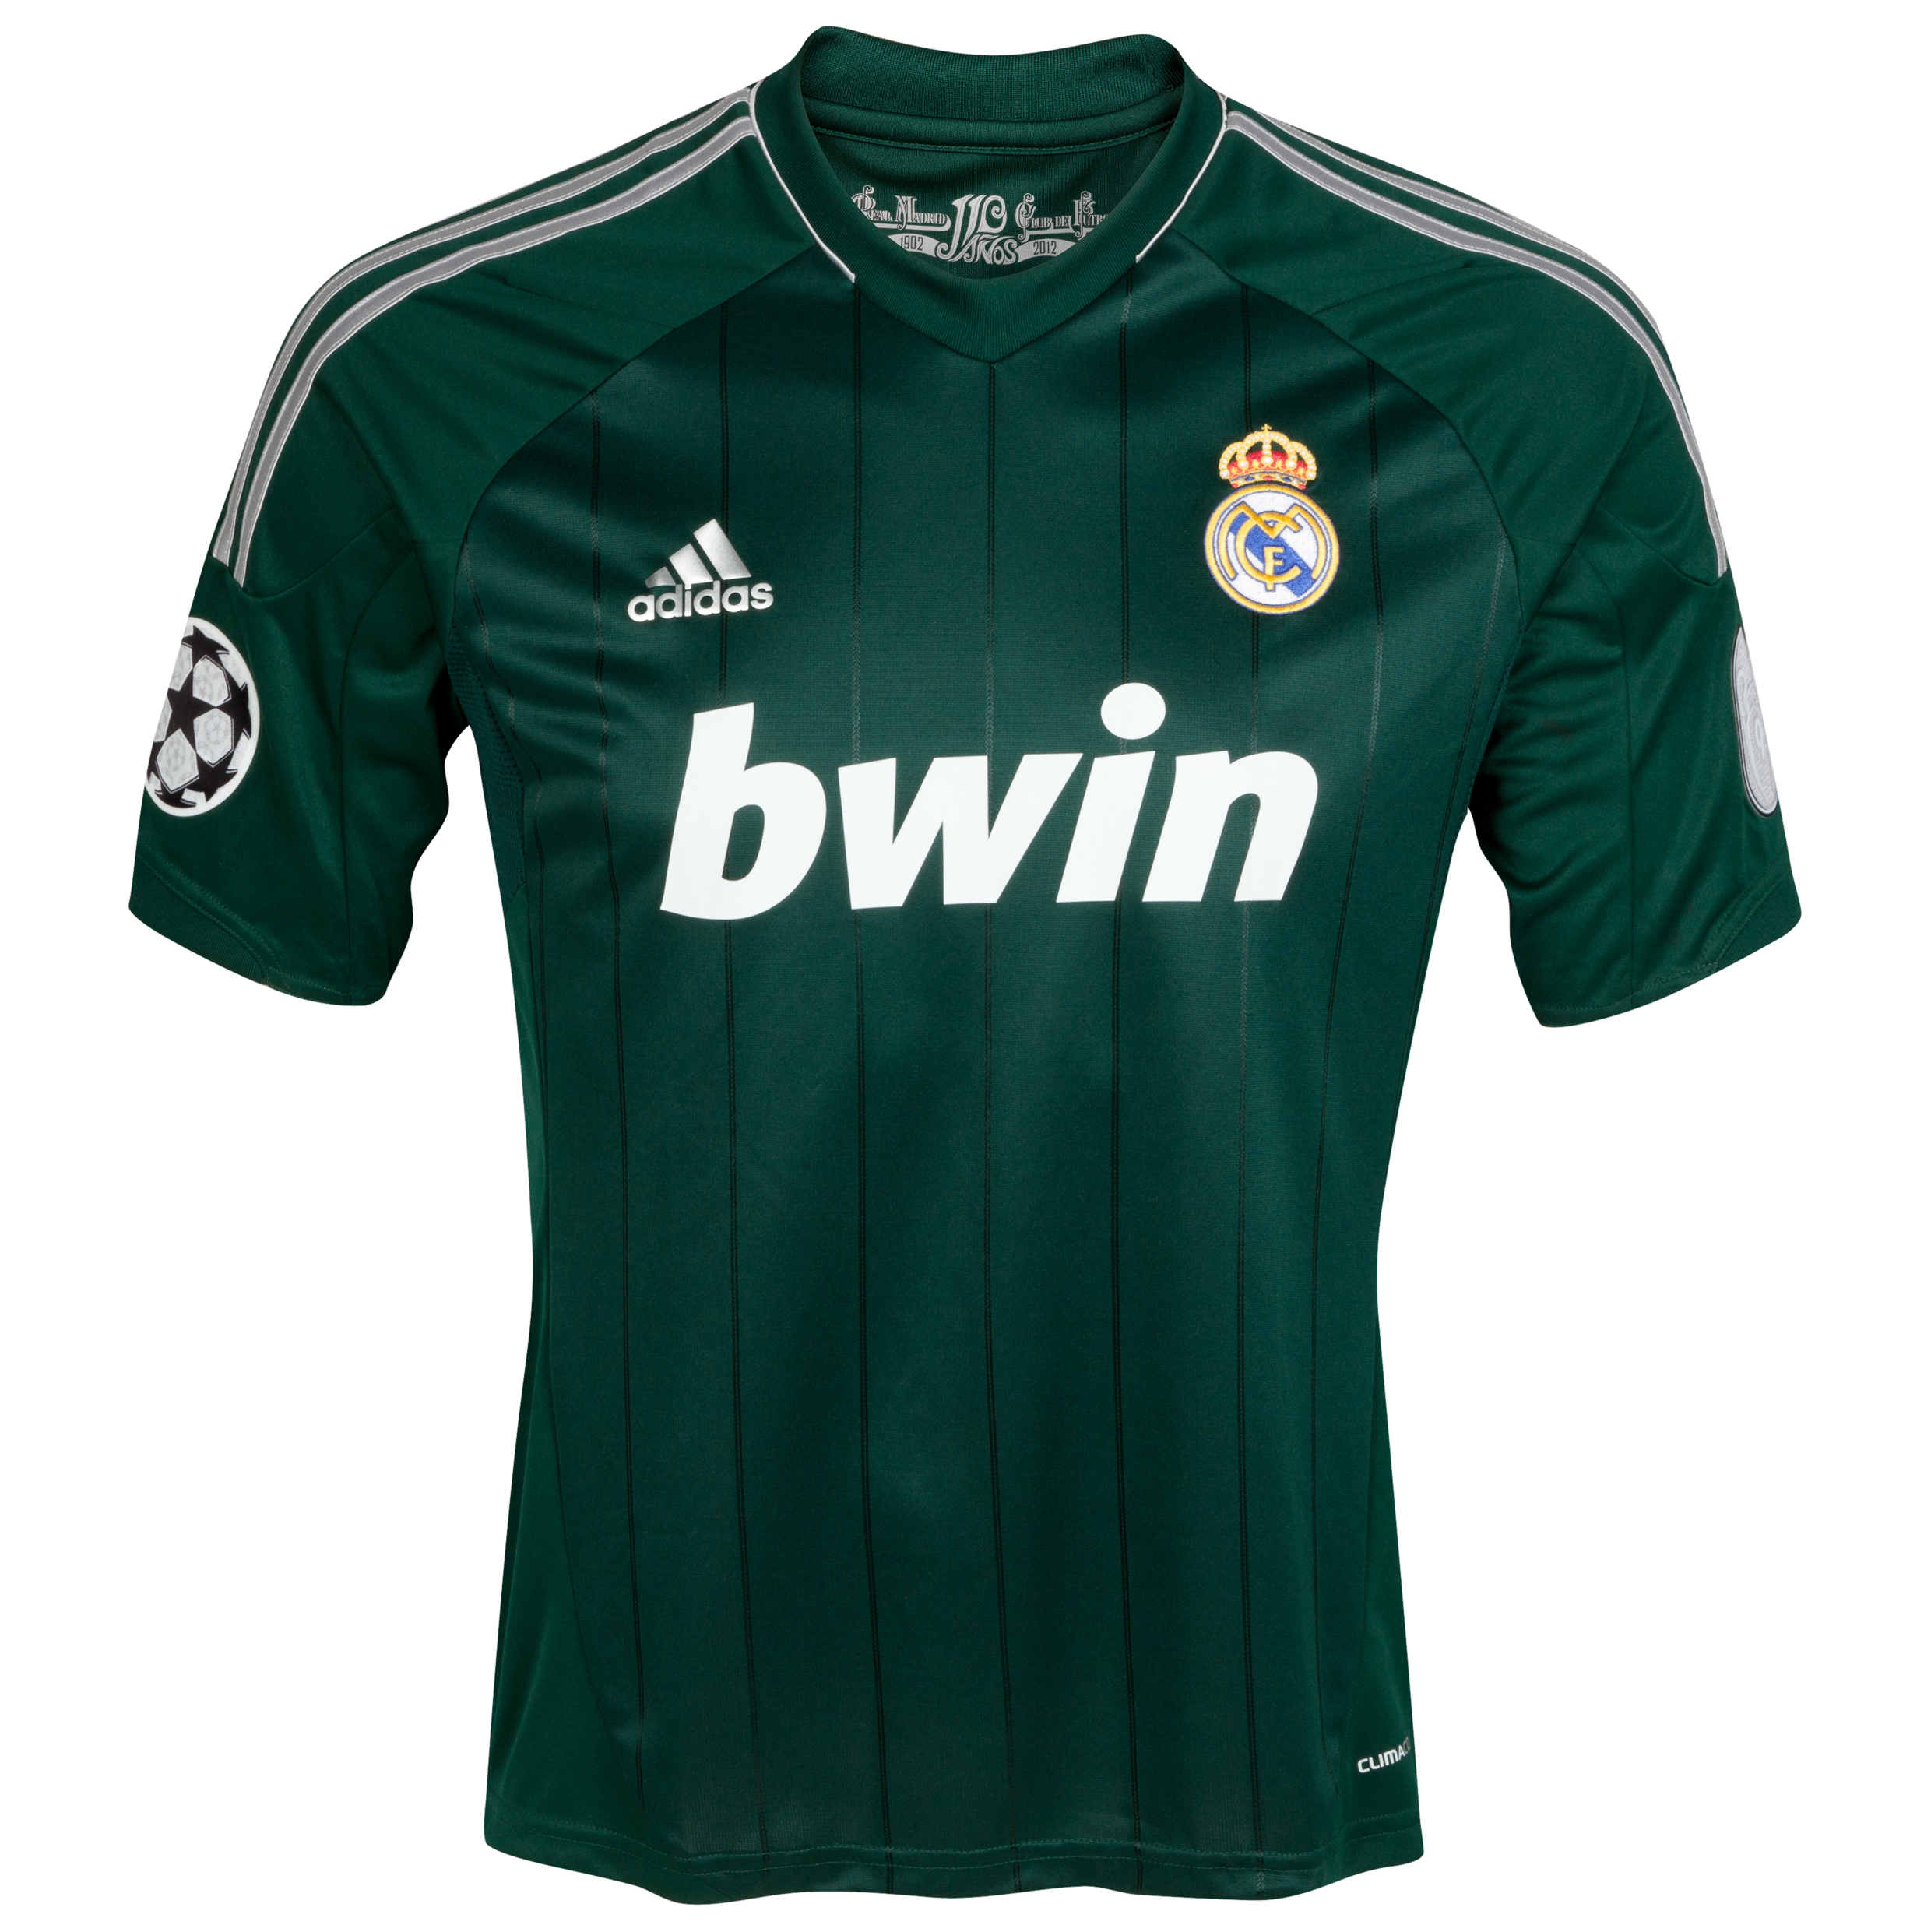 Real Madrid UEFA Champions League Third Shirt 2012/13 - Youths